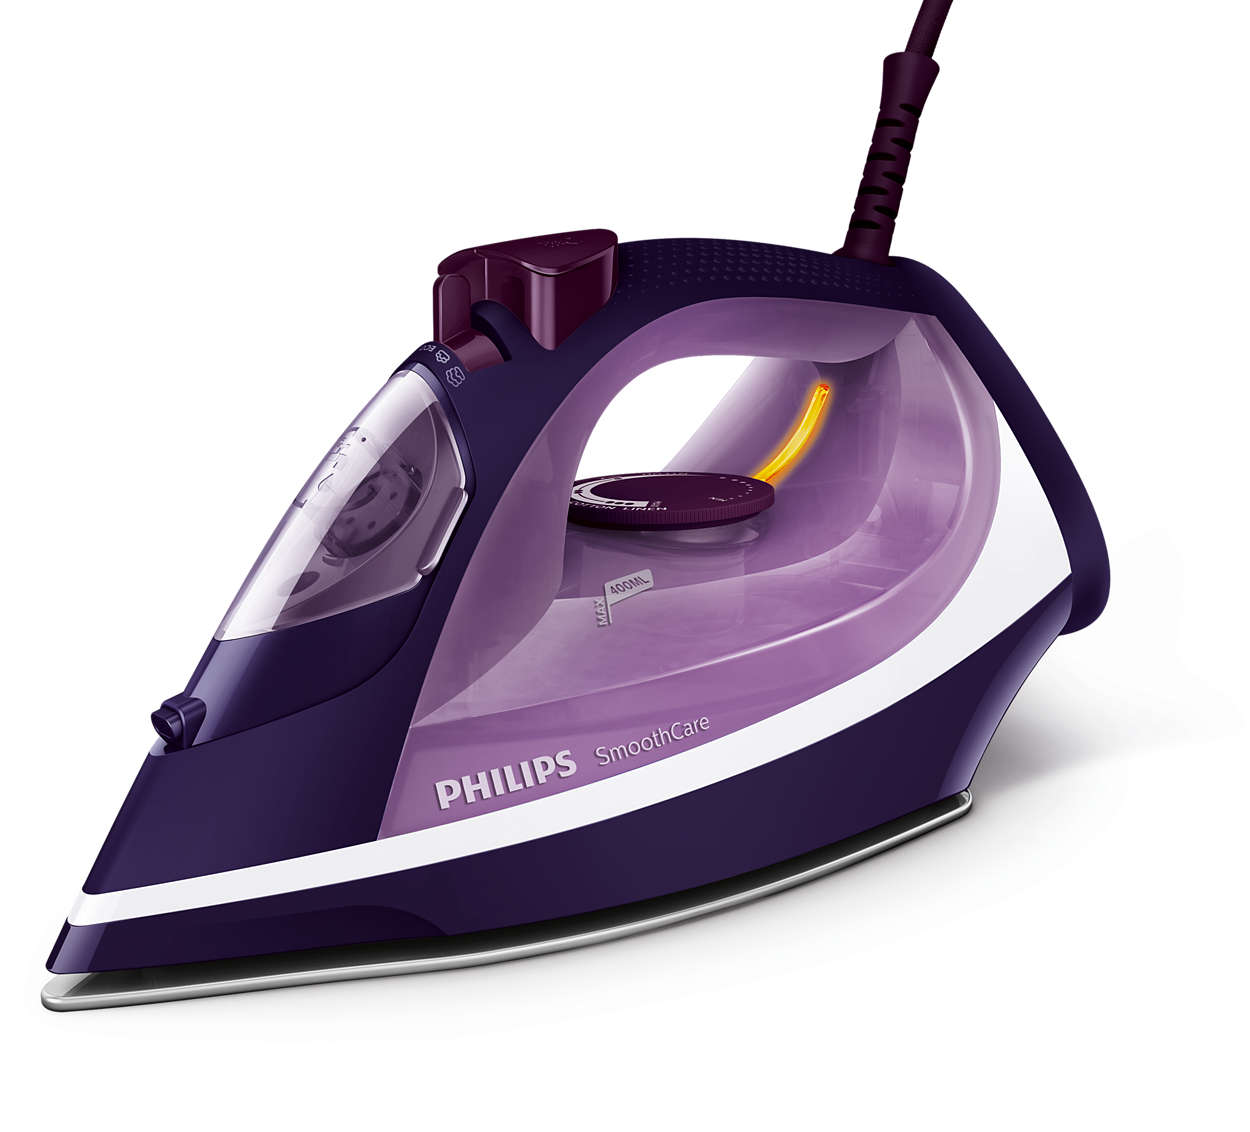 Паровой утюг Philips SmoothCare GC3584